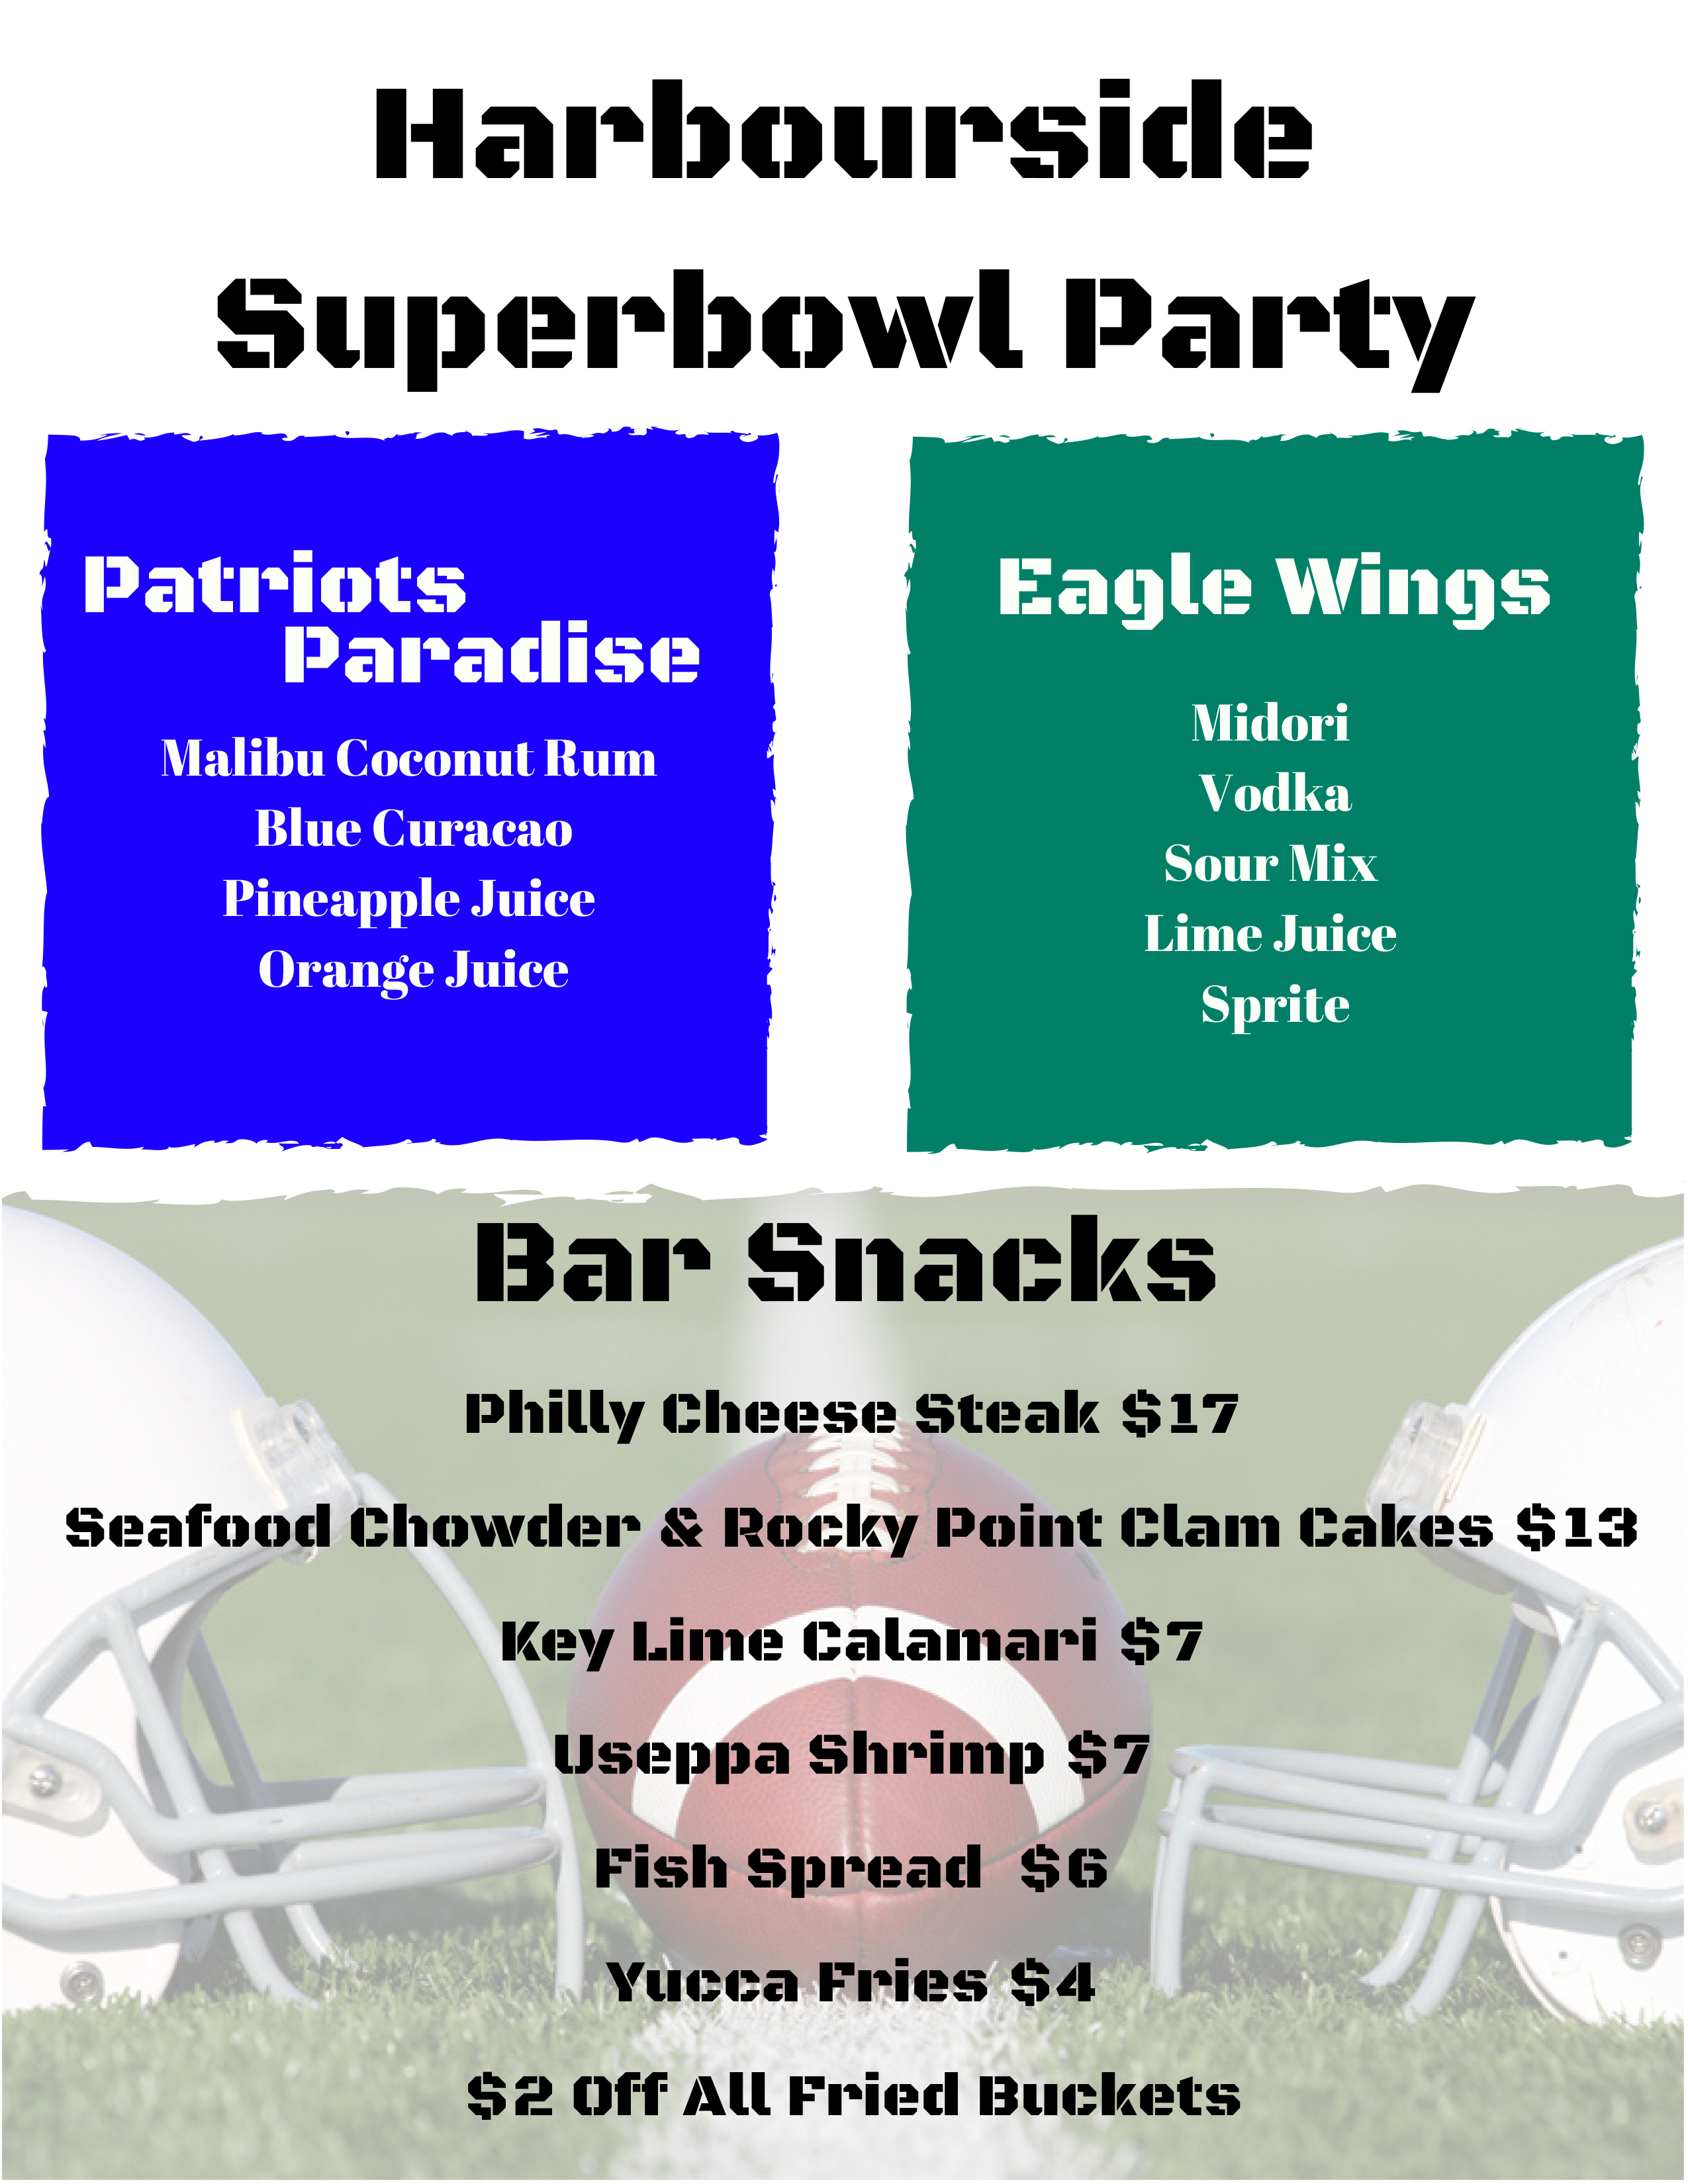 HarboursideSuperbowl Party